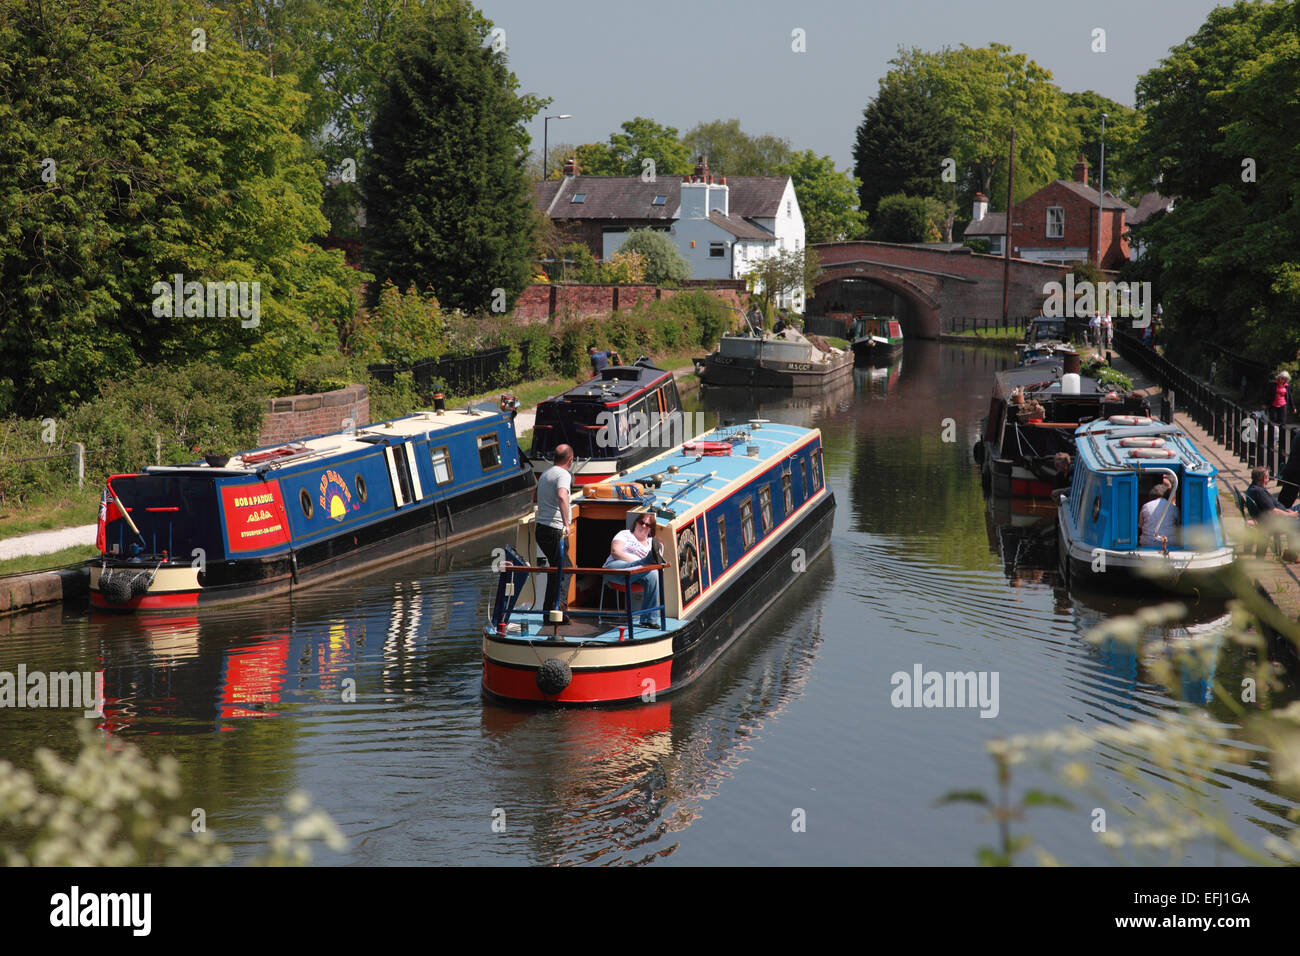 Narrowboats on the Bridgewater Canal looking towards Lymm Bridge at Lymm in Cheshire - Stock Image